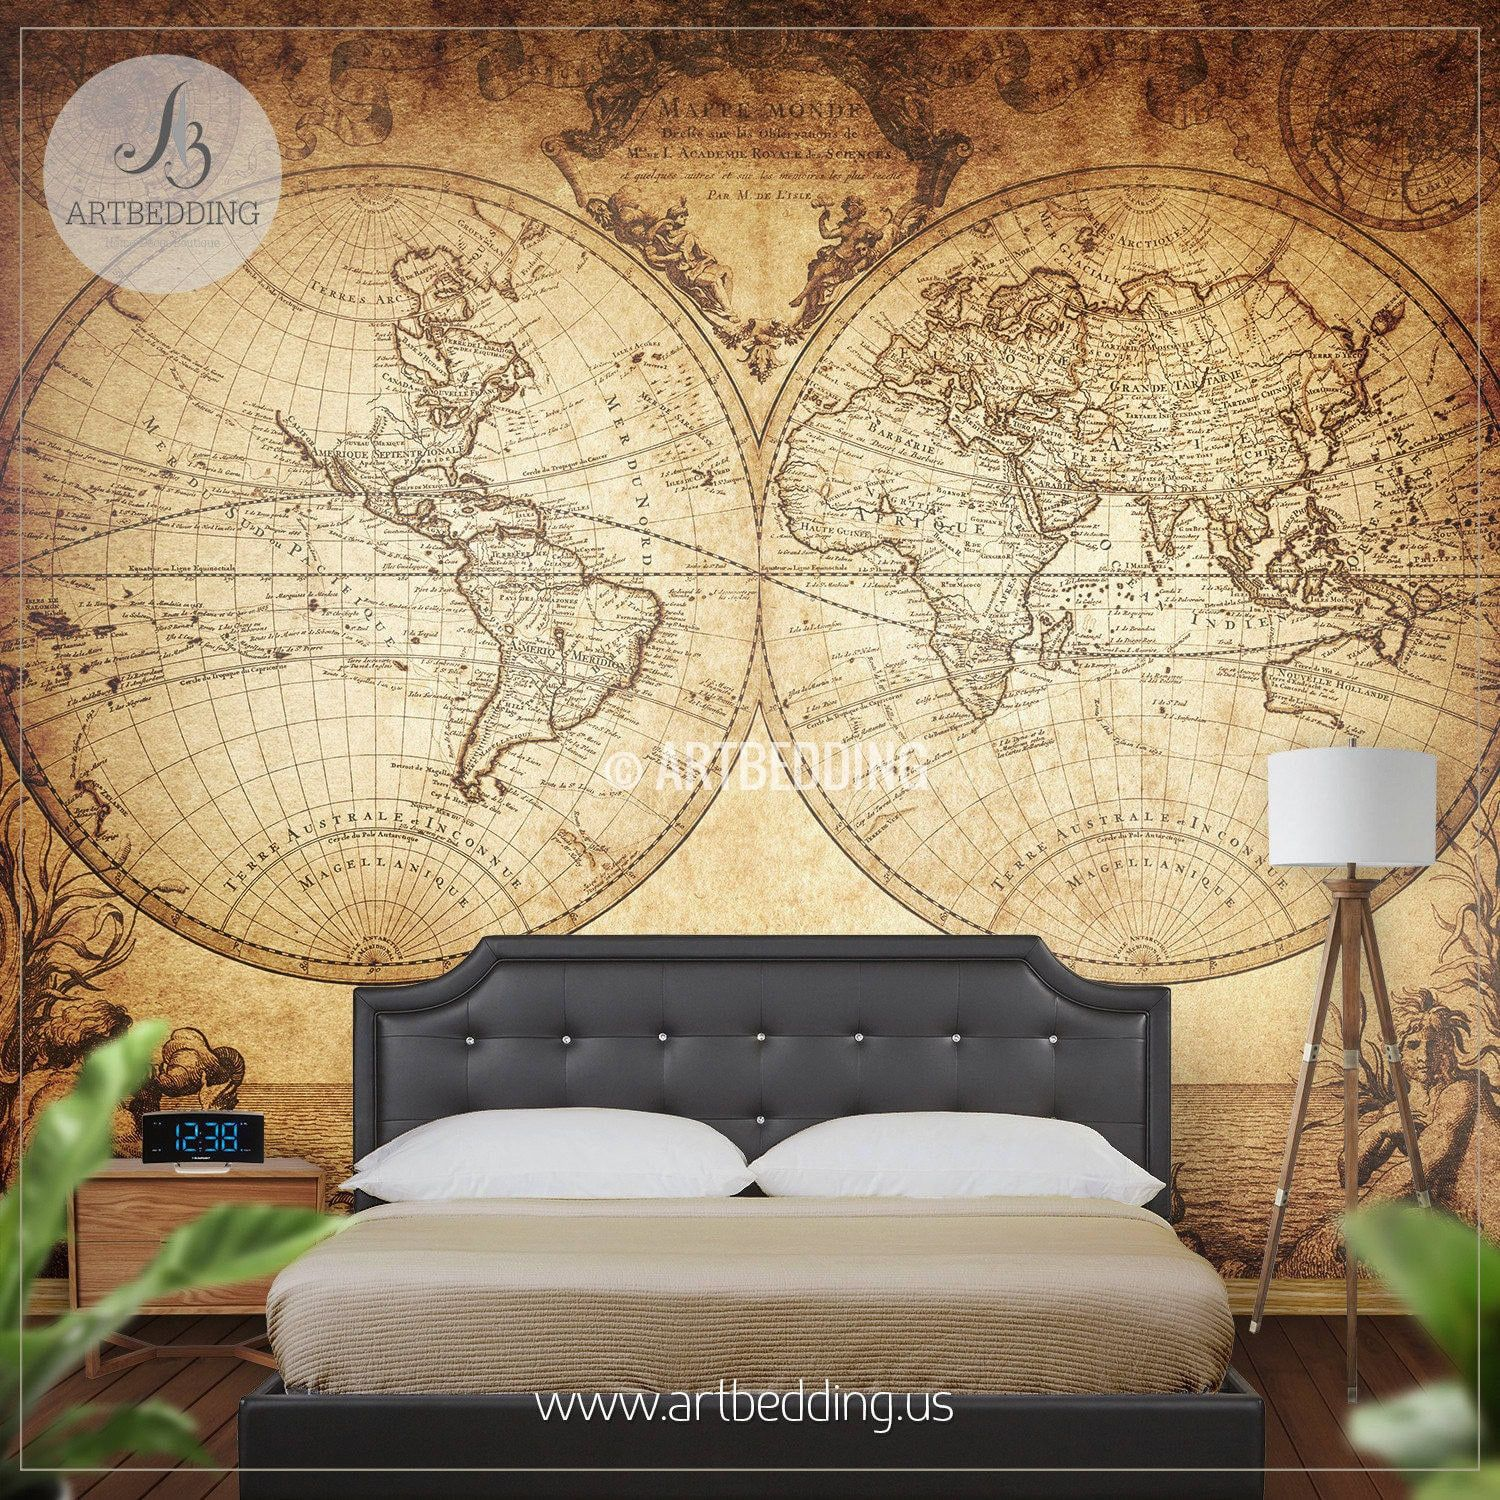 Dorable Adhesive Wall Decor Photo - The Wall Art Decorations ...